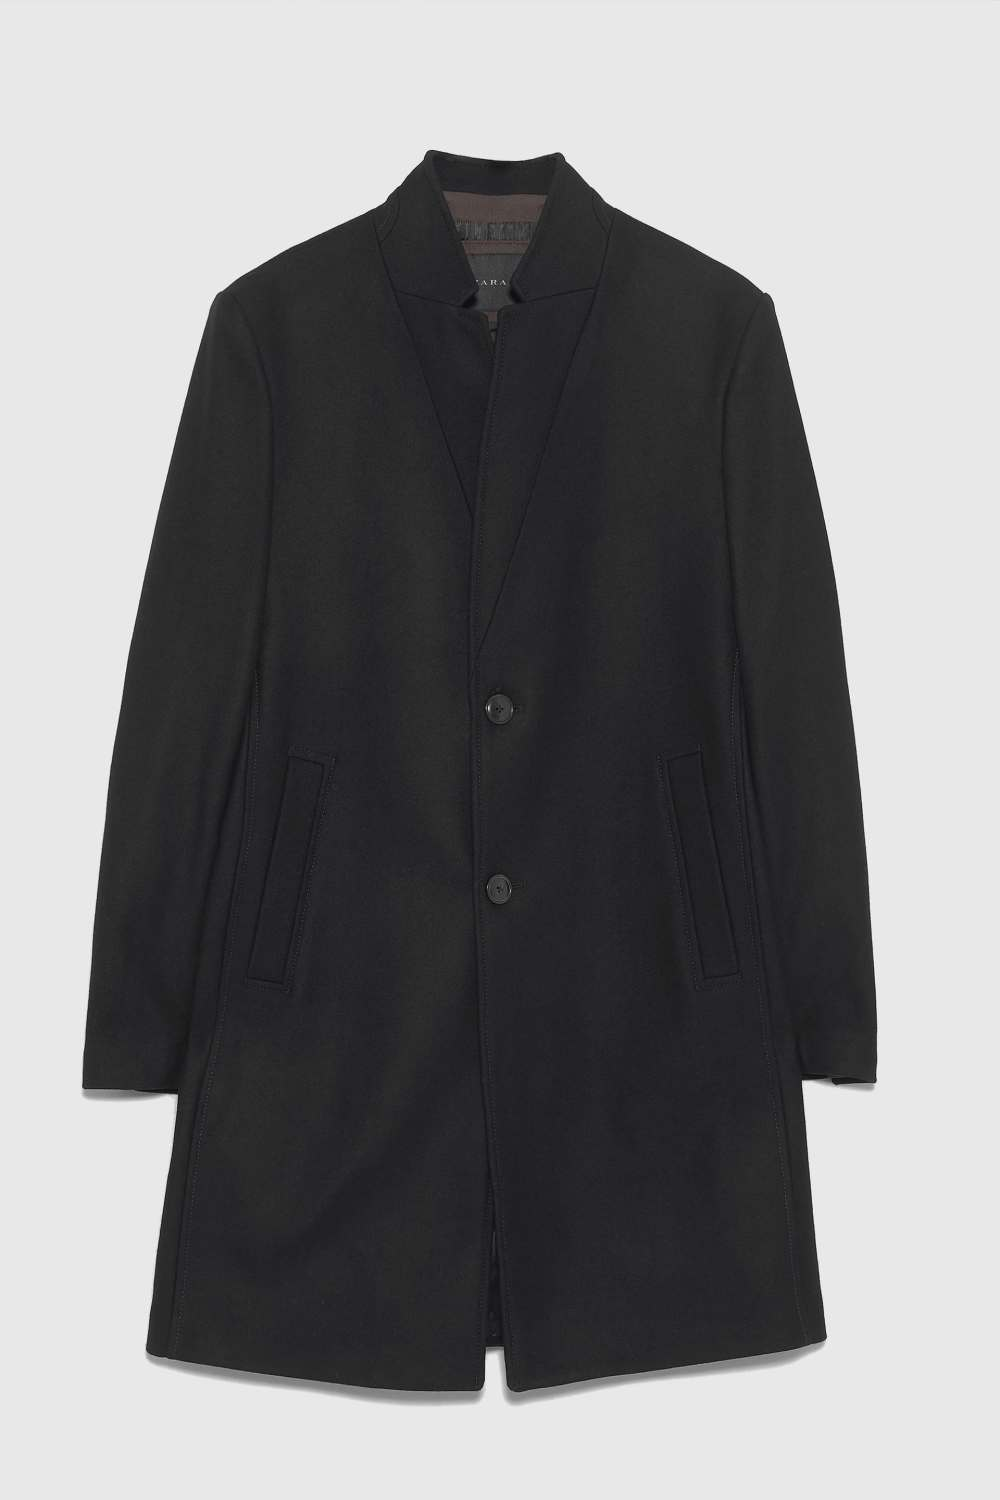 706b831a It's hard to find something in suit jackets or coats that aren't capped off  with a square.